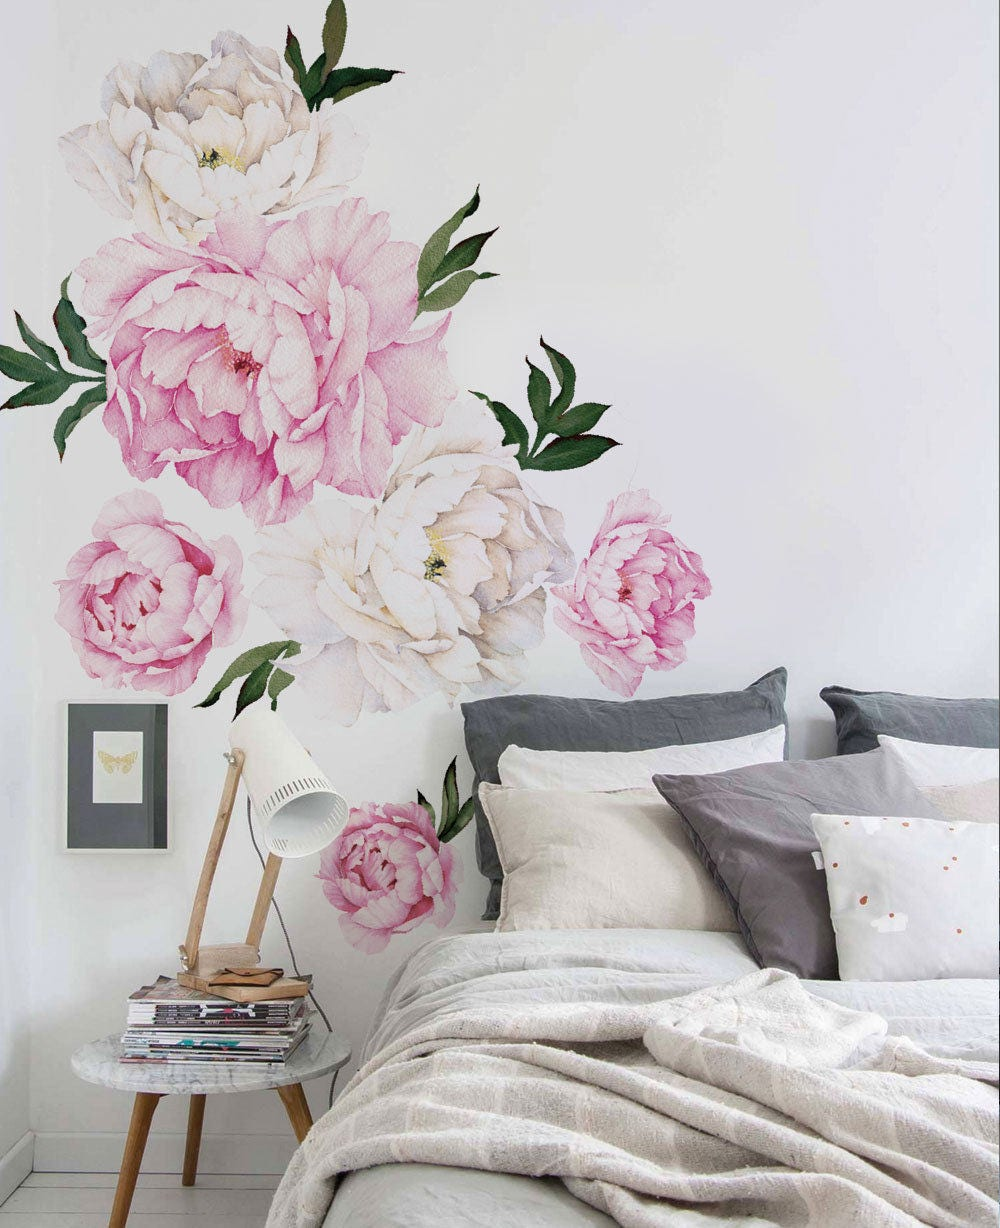 Non Traditional Wall Décor Ideas To Make A Bold Statement: Peony Flower Wall Sticker Vivid Pink Watercolor Peony Wall